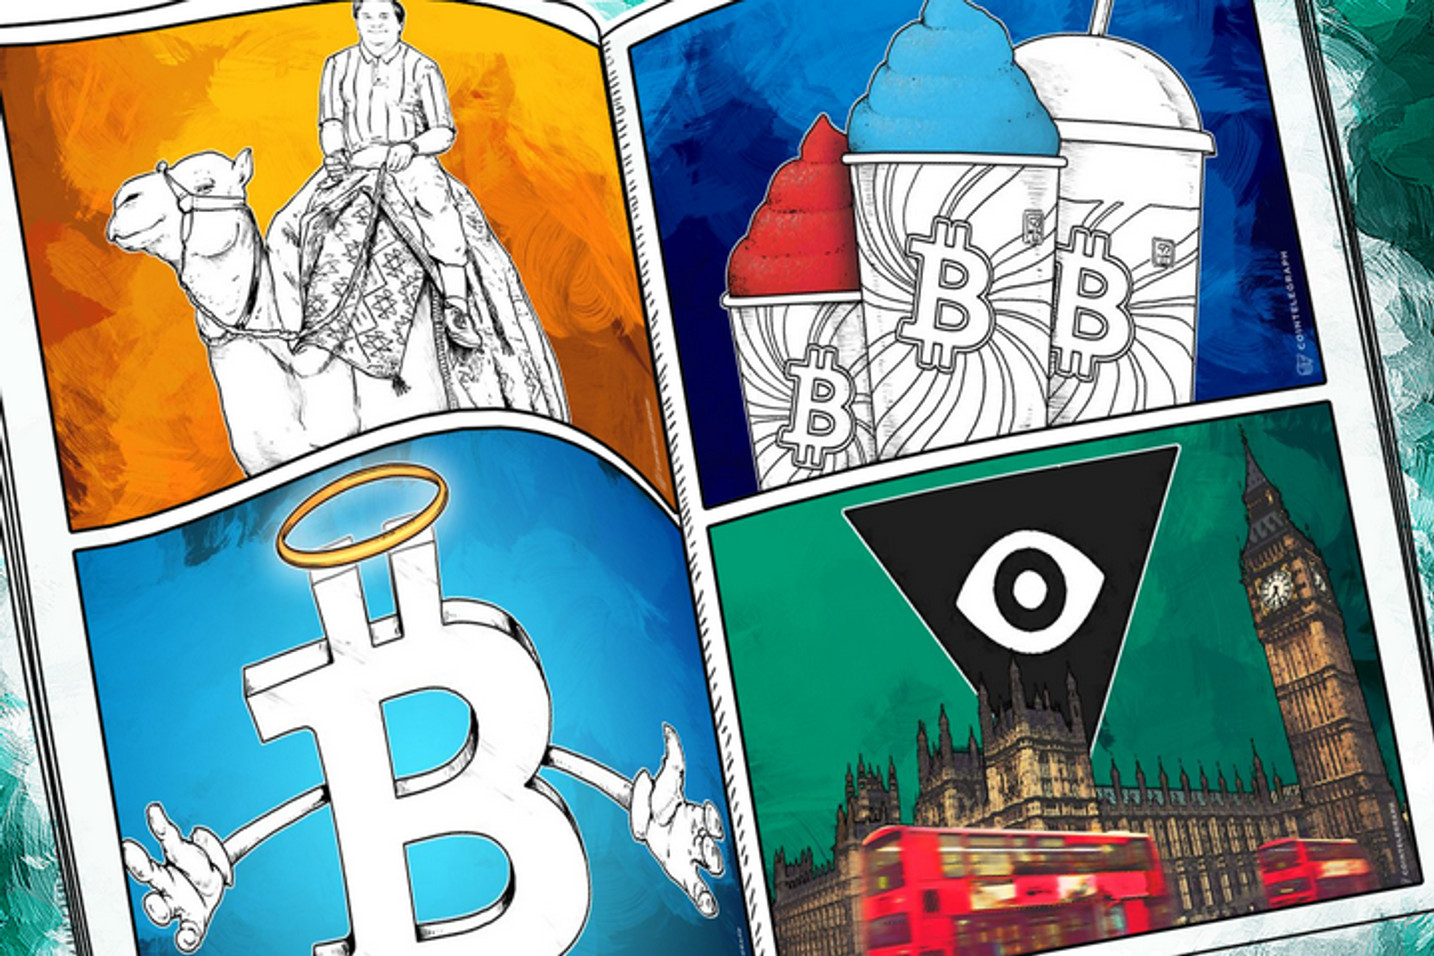 Weekend Roundup: Karpeles Implicated in Ulbricht Trial, BitHalo's Escrow, and Bitcoin at 7-Eleven in S. Korea